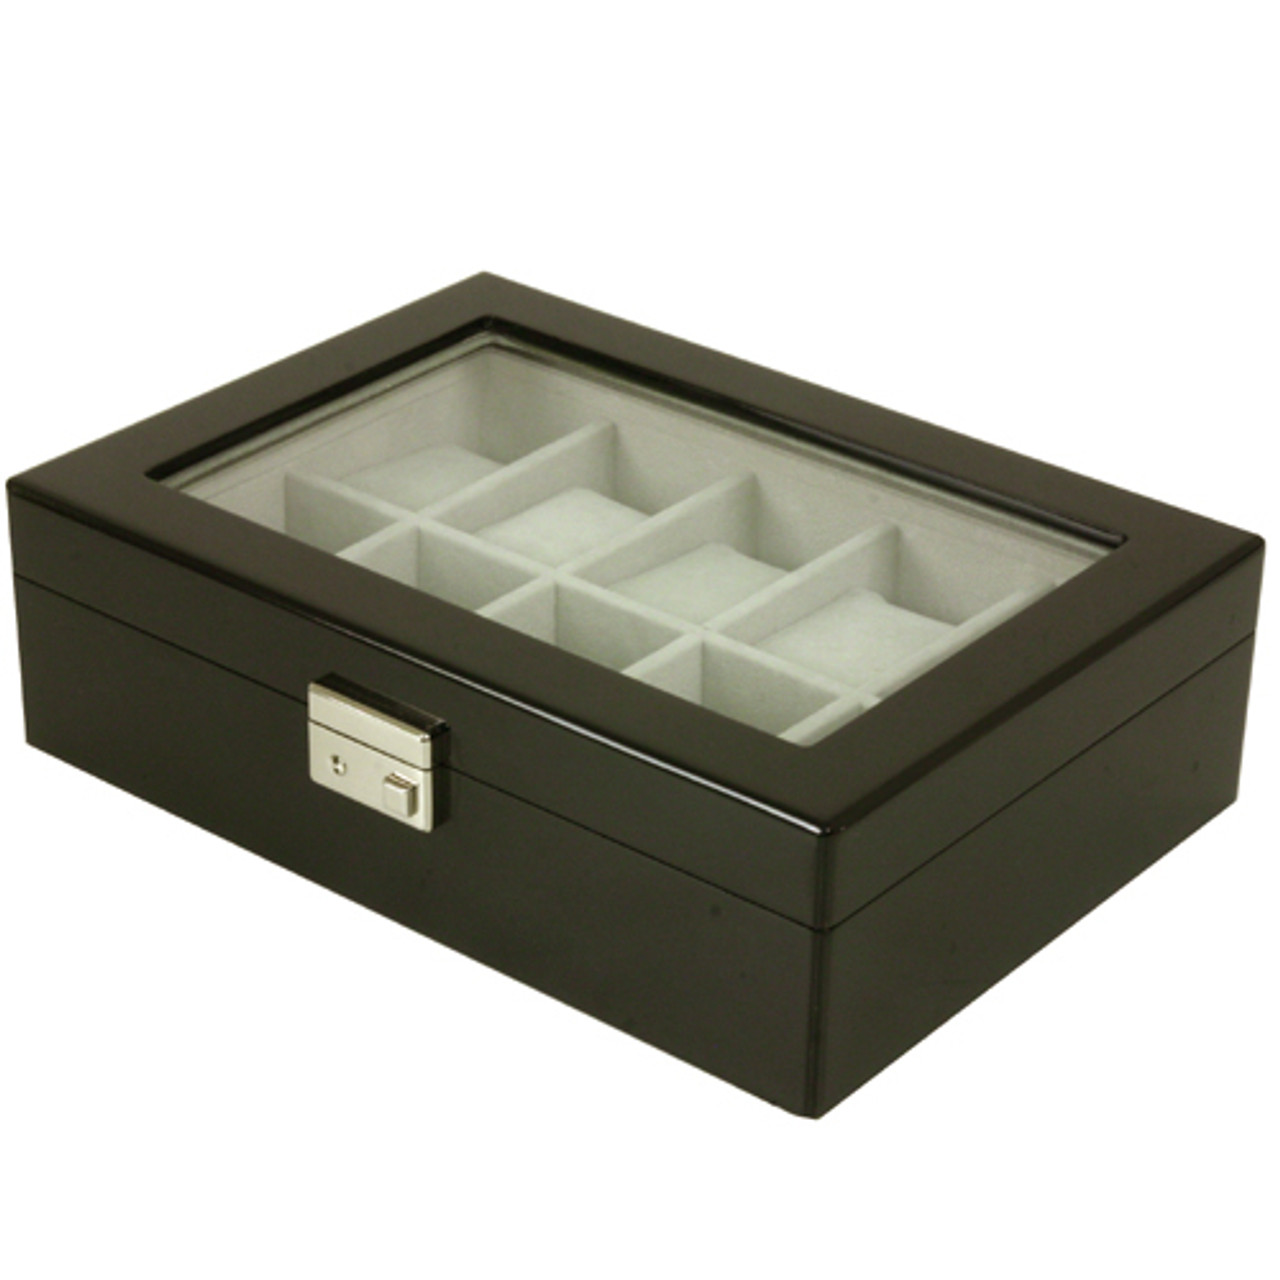 Watch Box 10 Black Lacquer Window Large Cushions